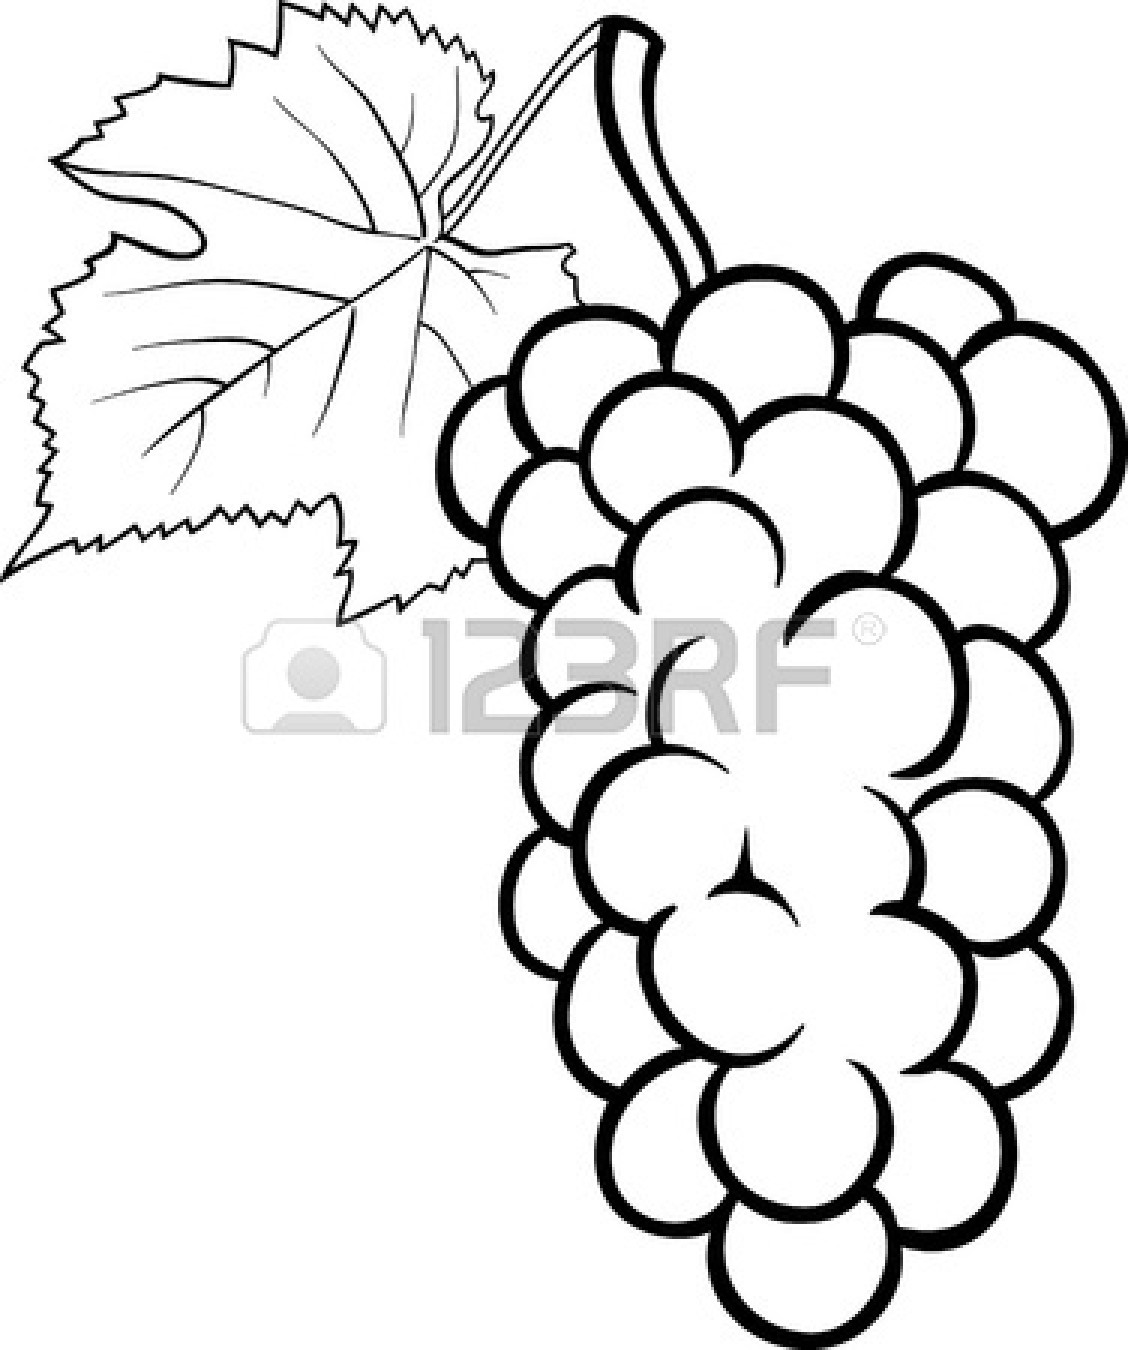 1128x1350 Cartoon Fruits And Vegetables Clipart